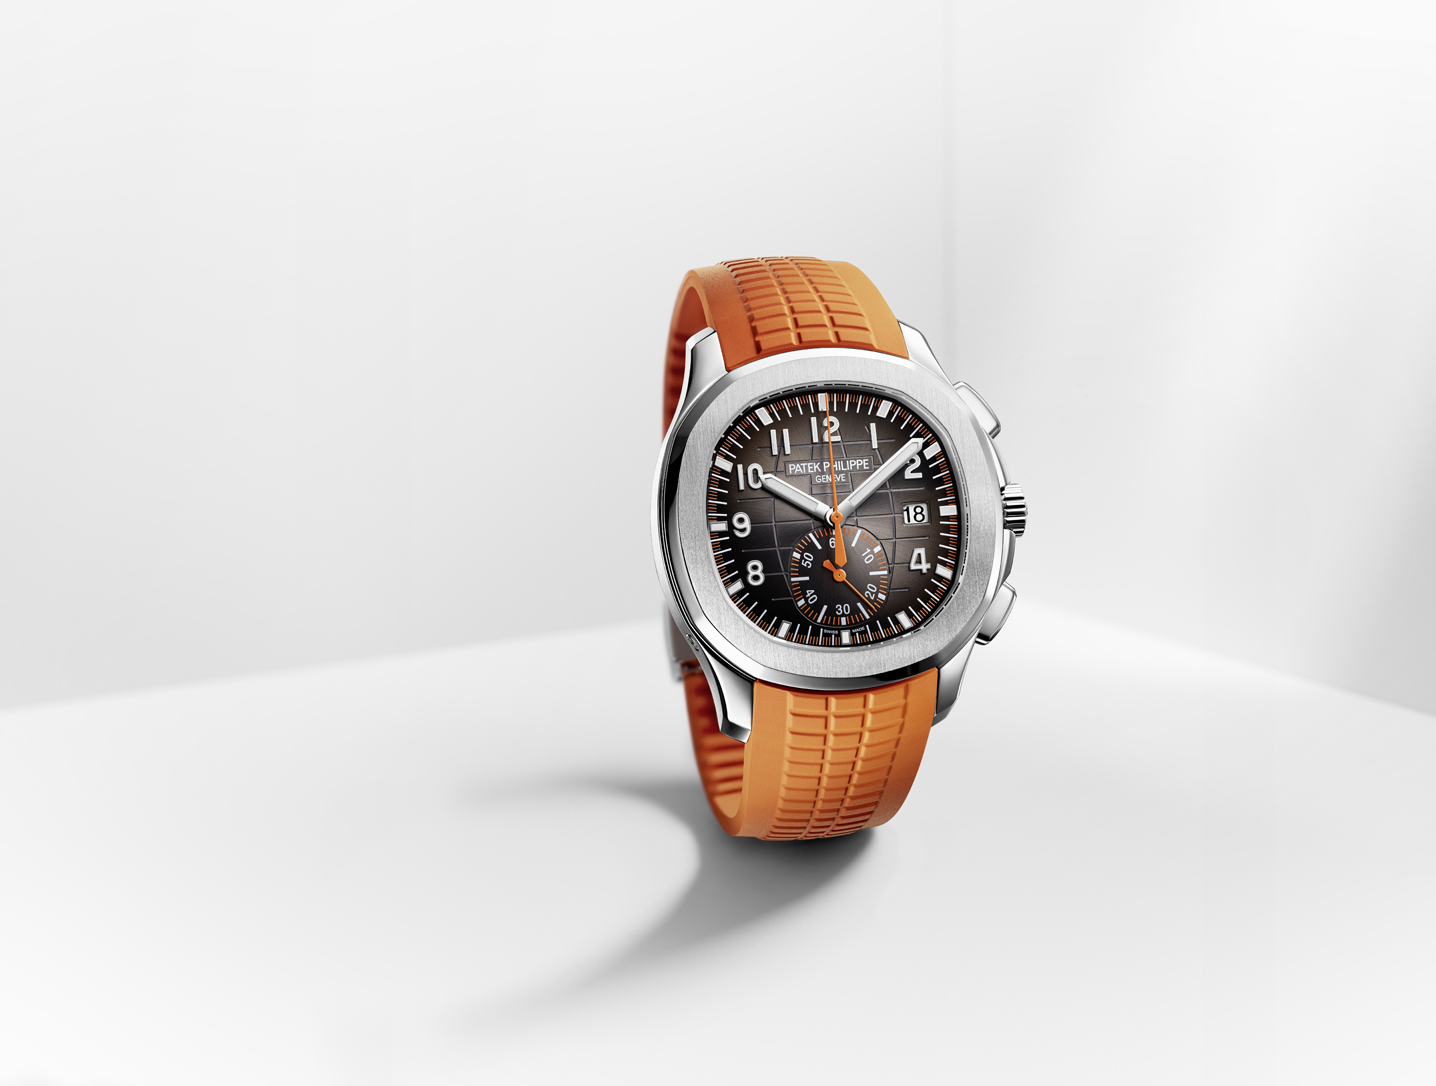 Patek Philippe Aquanaut Chronographe : orange is new black